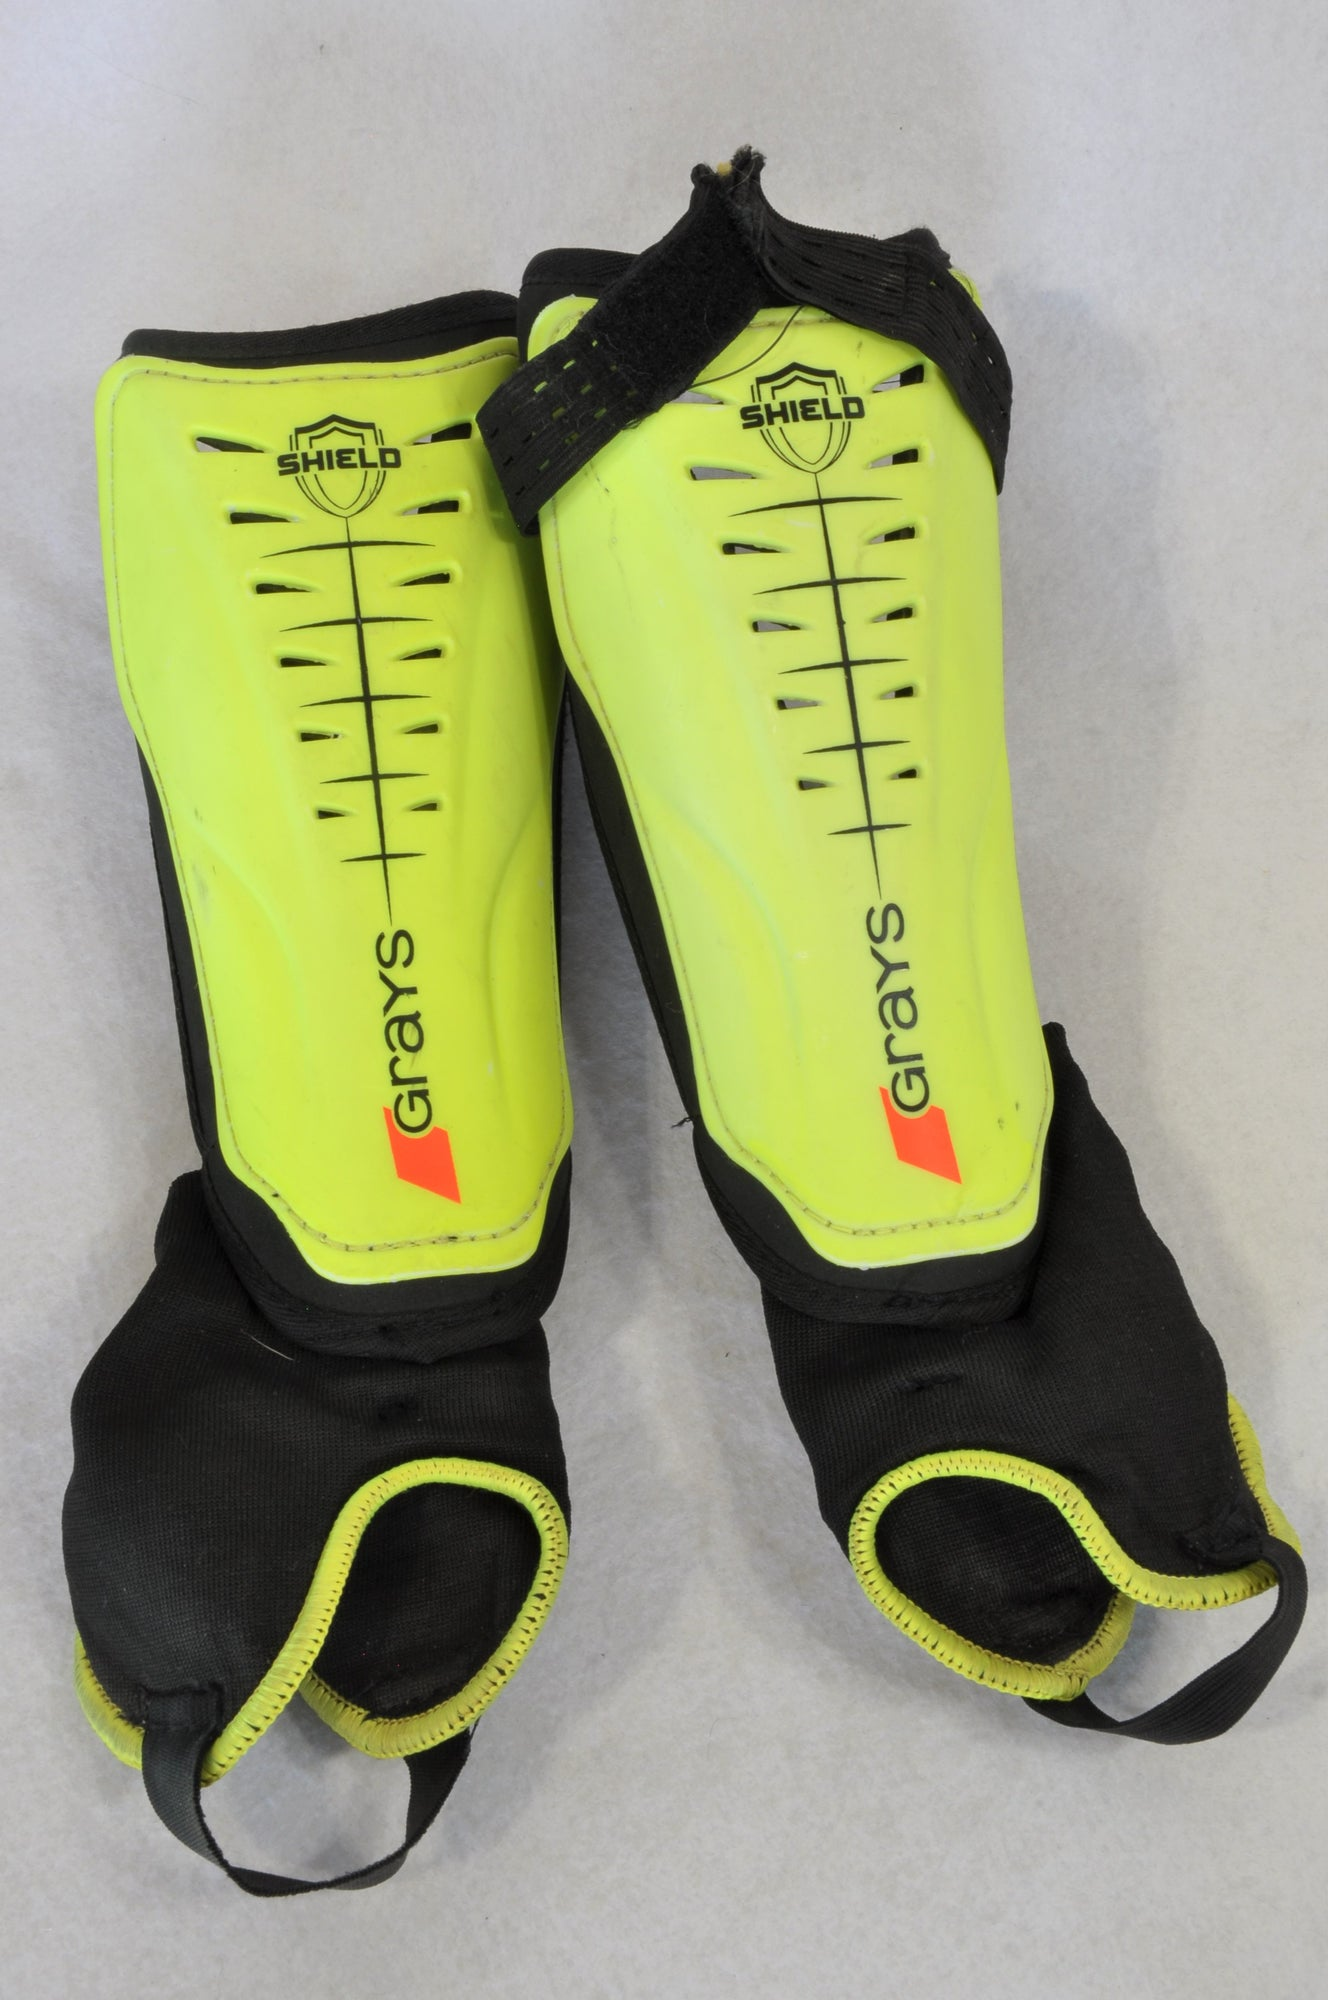 Grays Size Small Black & Yellow Sport Shin Guards Unisex 4-6 years